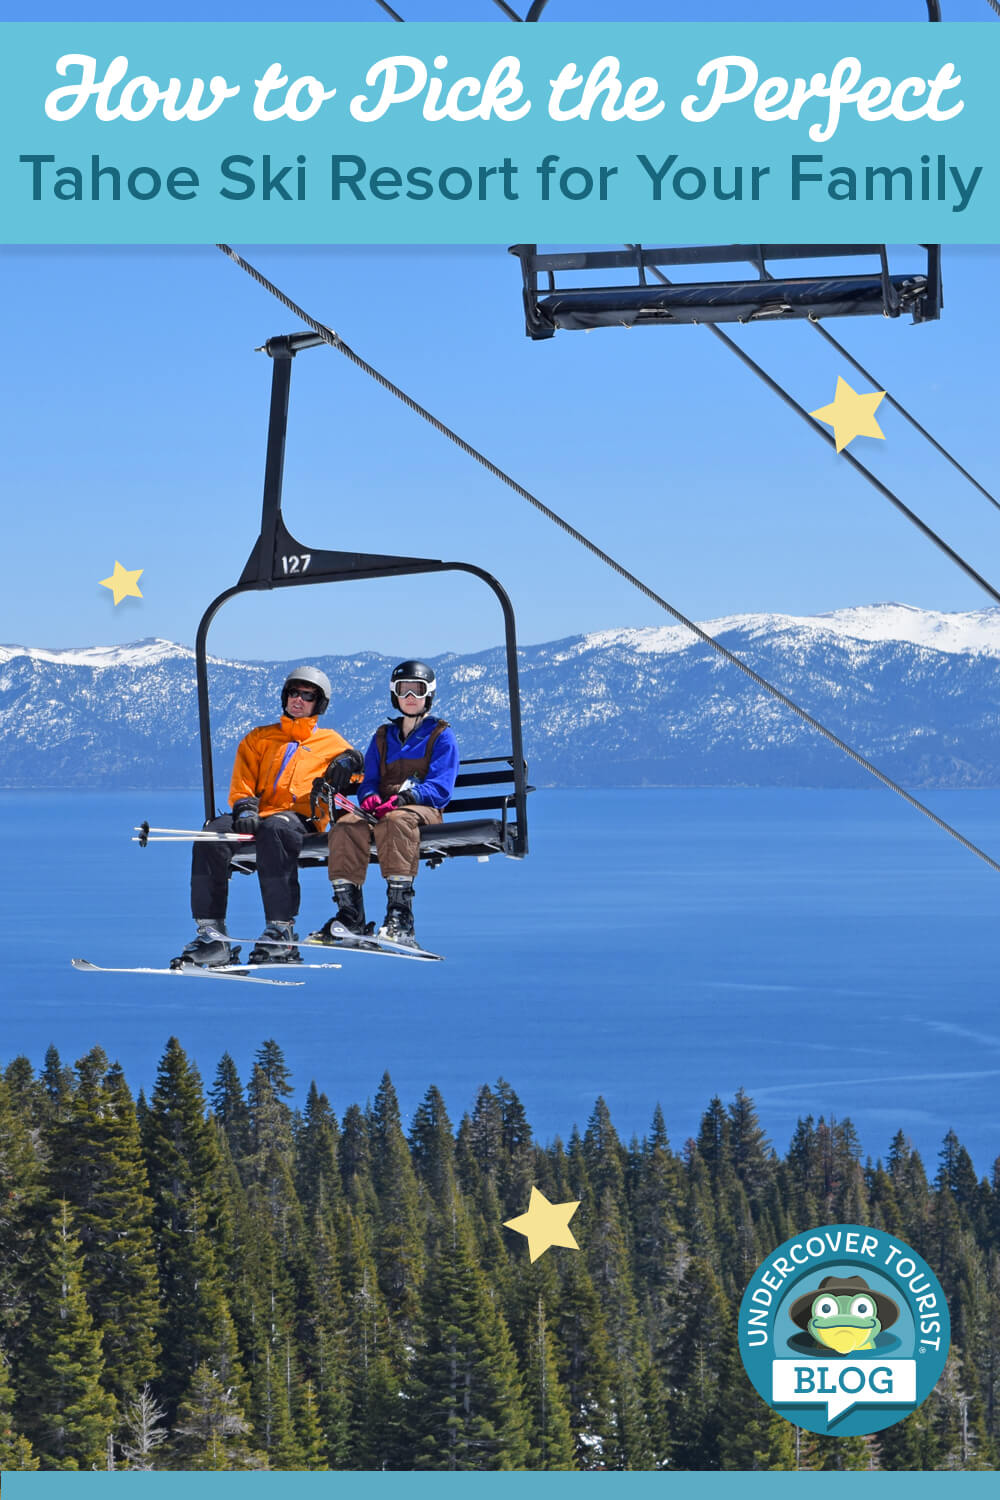 Pick the Best Tahoe Ski Resort for Your Family